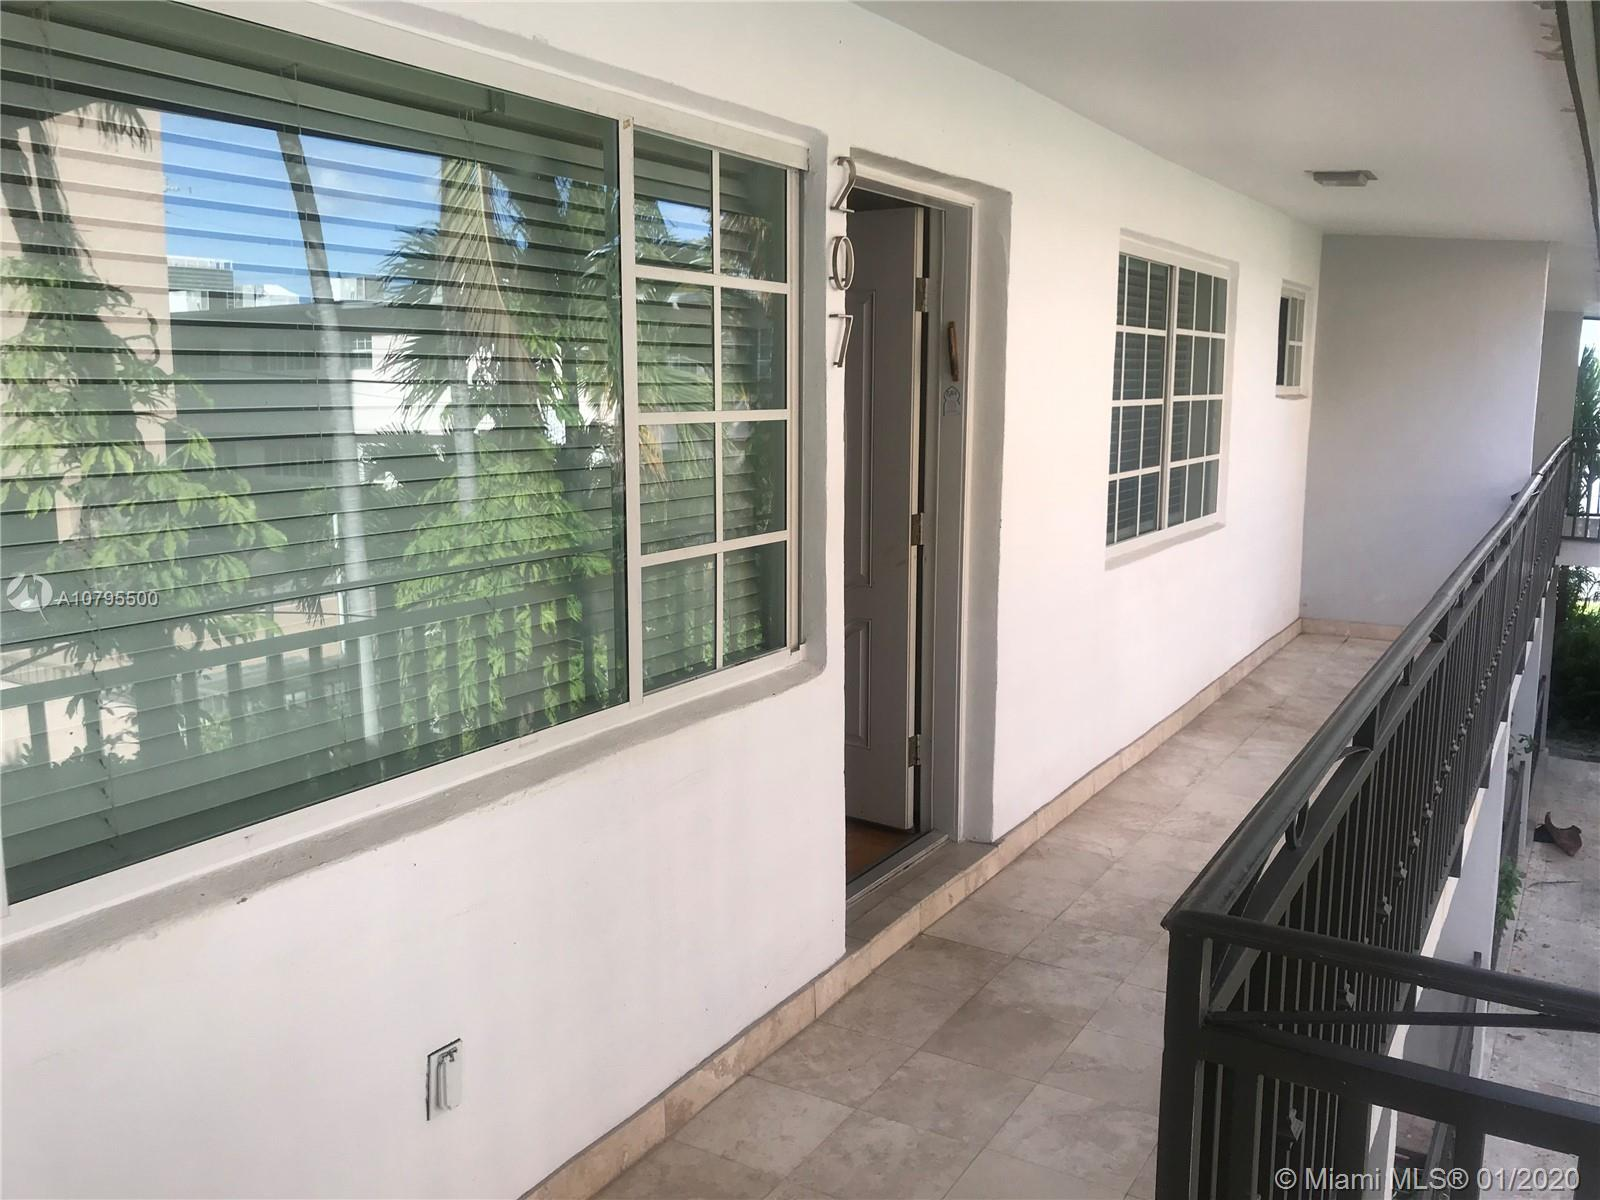 1135  92nd St #204 For Sale A10795500, FL